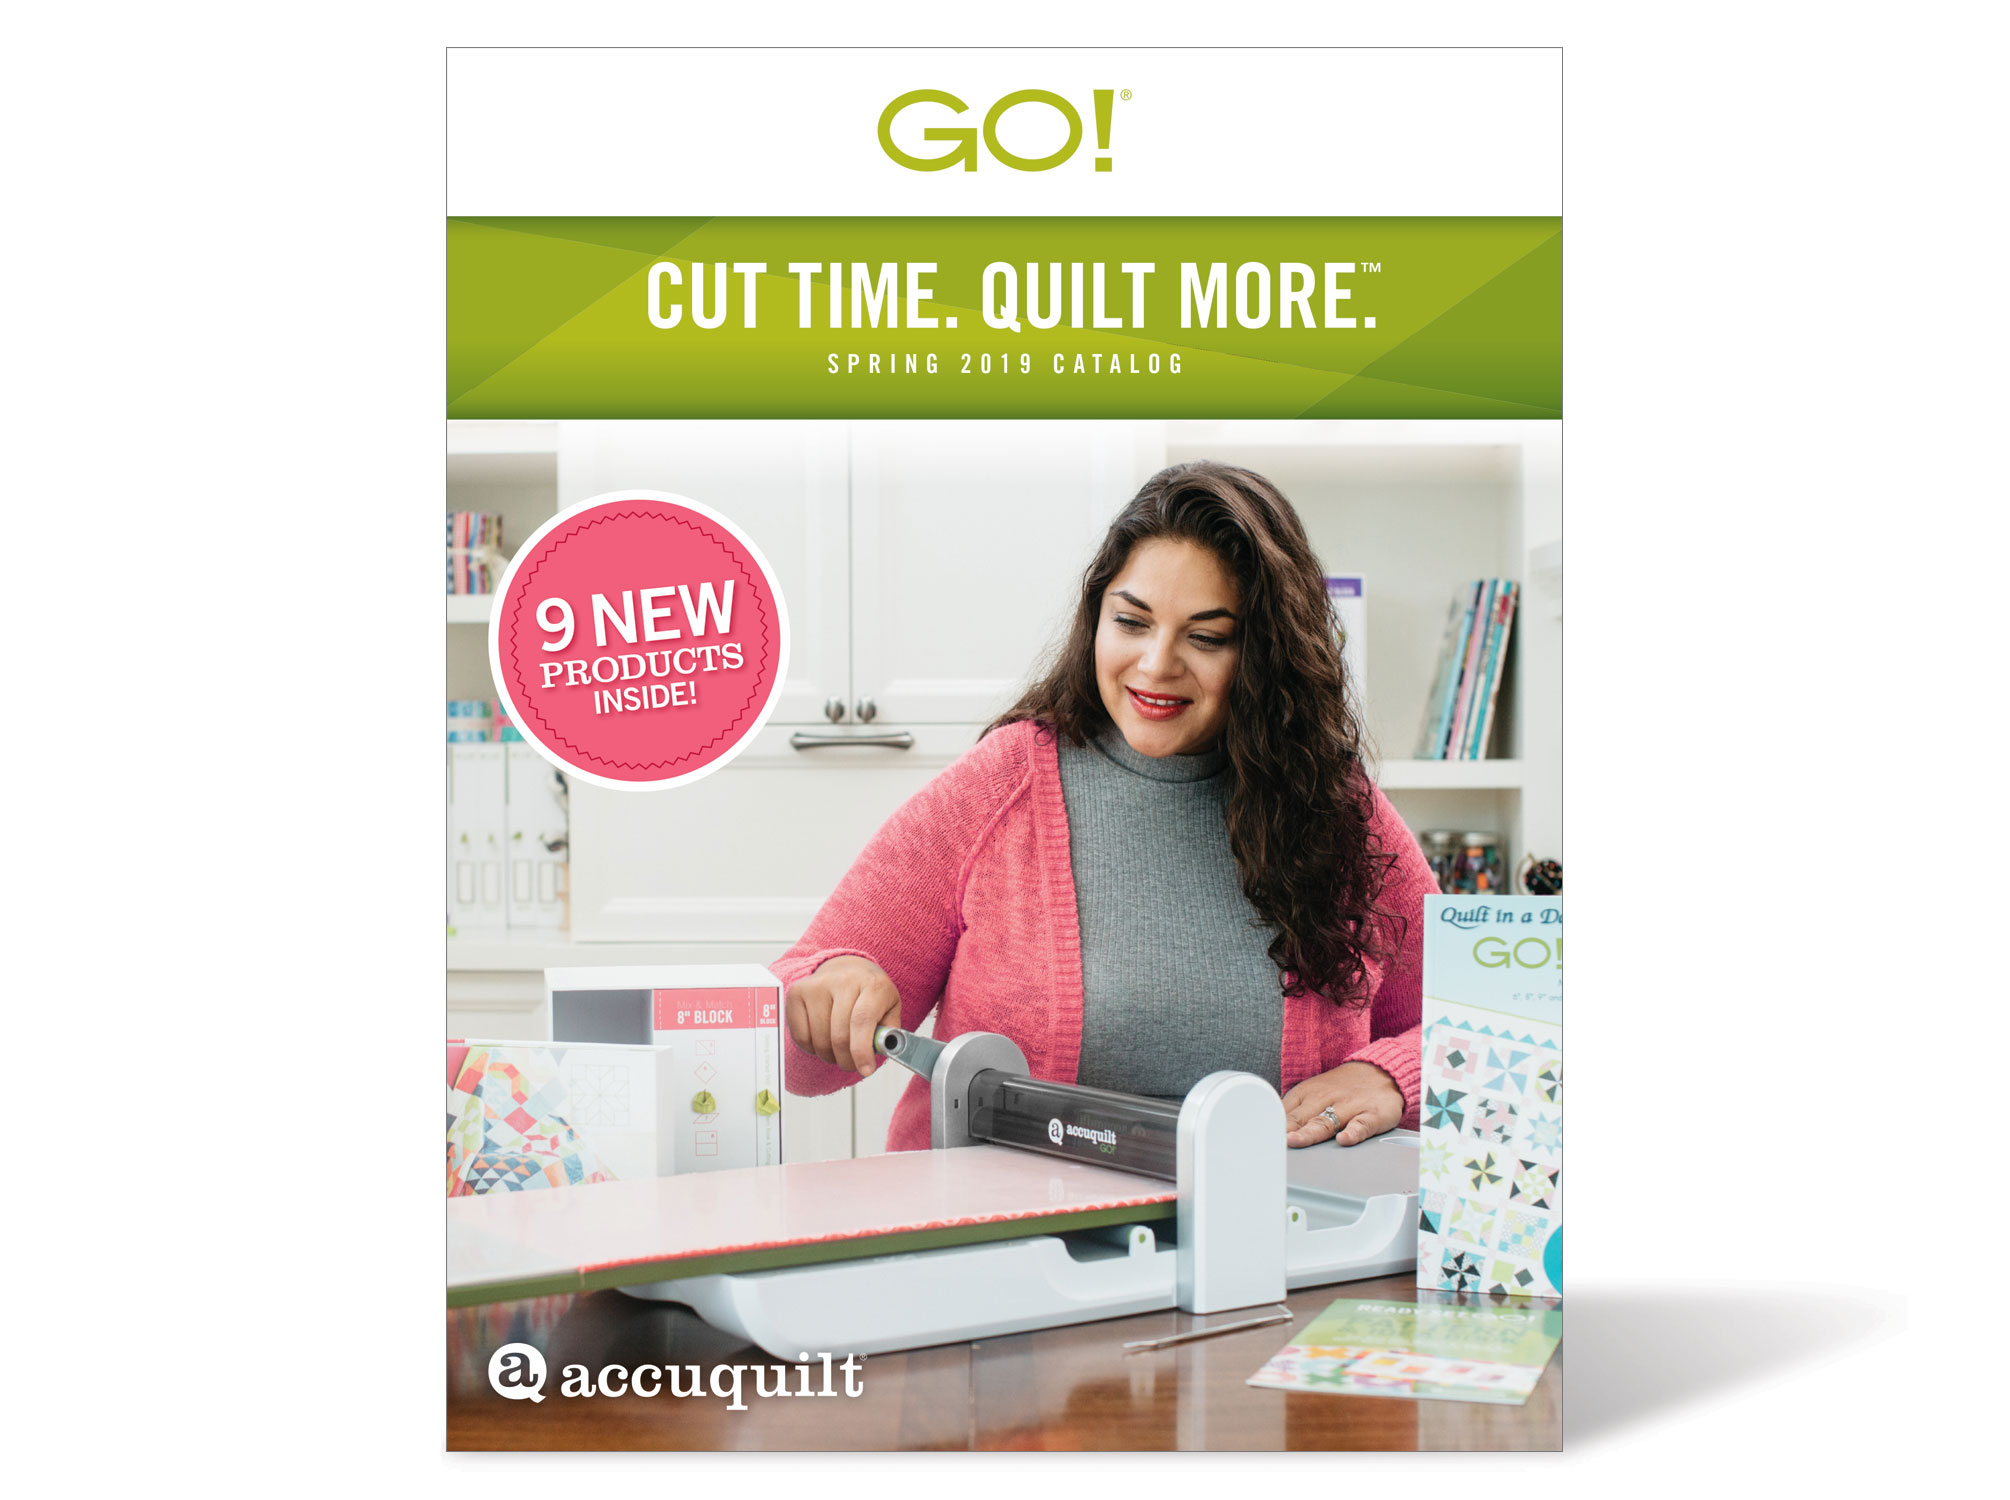 GO!-Catalog-2019-Spring-Cover-Landing-Page